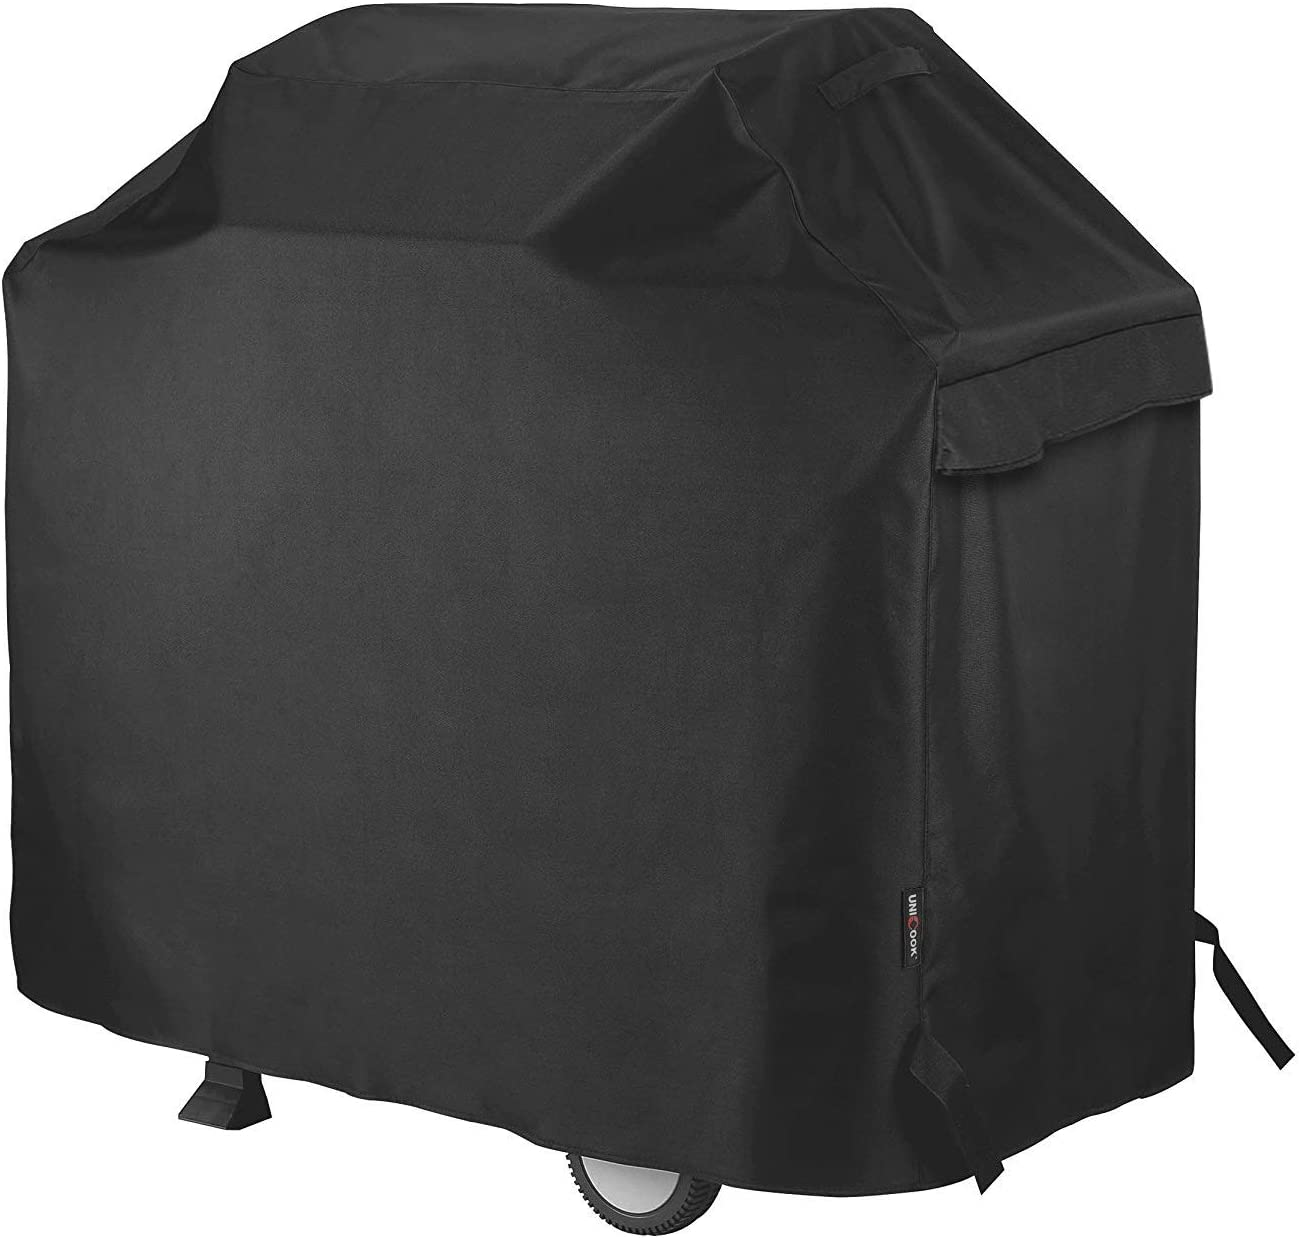 """Unicook Heavy Duty Waterproof Barbecue Gas Grill Cover, Small 50-inch BBQ Cover, Special Fade and UV Resistant Material, Fits Grills of Weber Char-Broil Nexgrill Brinkmann and More, 50""""W x 22""""D x 40""""H : Garden & Outdoor"""